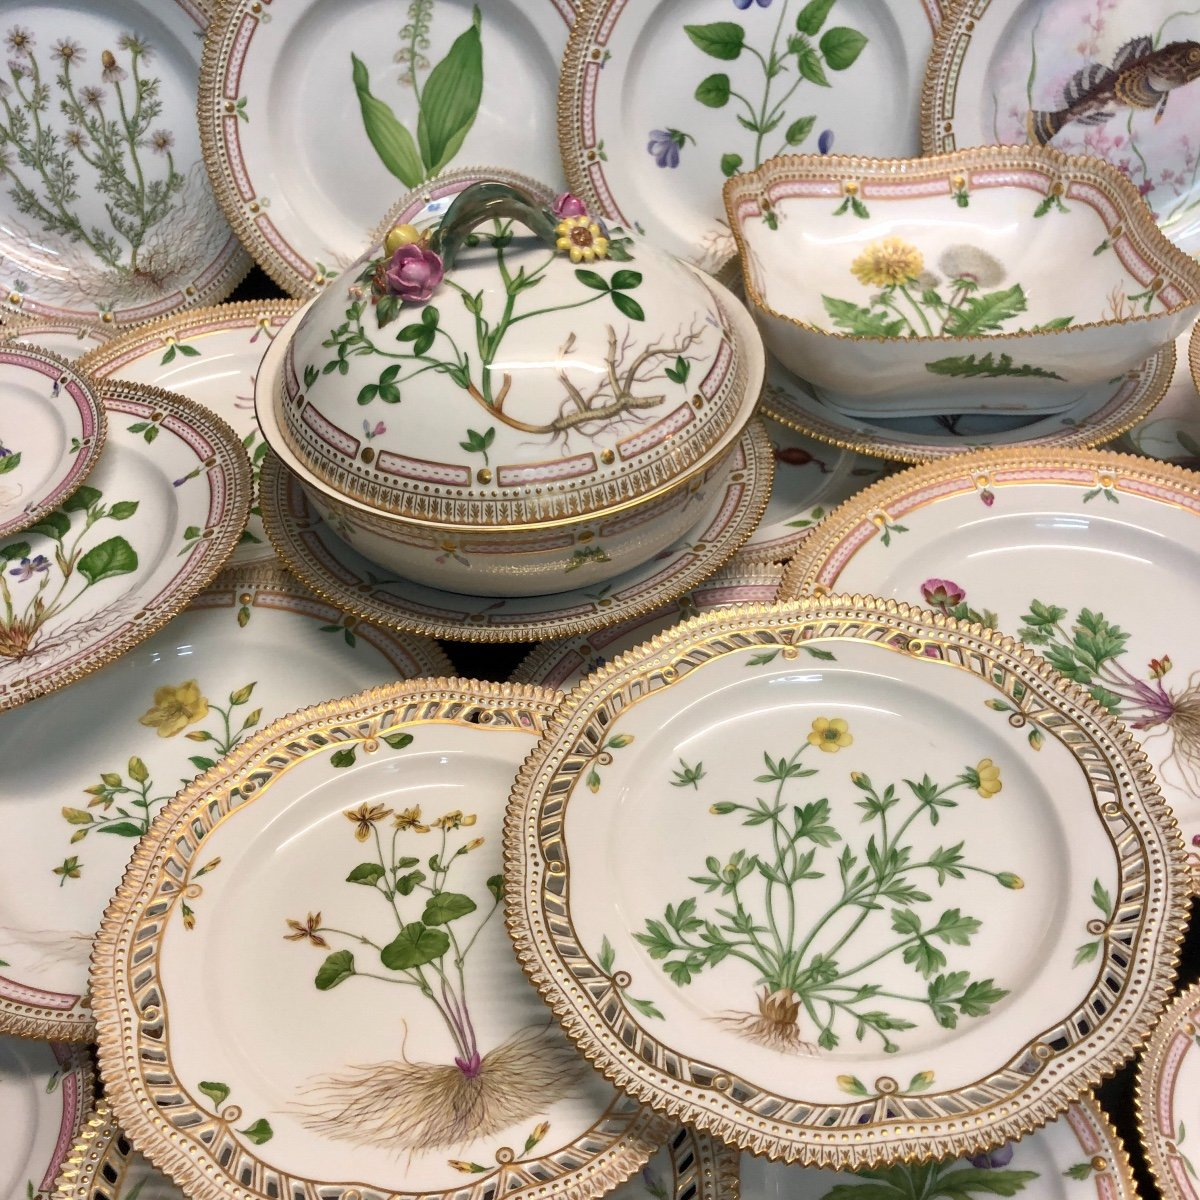 Royal Copenhagen 29 Service Pieces Flora Danica Porcelain In Very Good Condition Copenhage